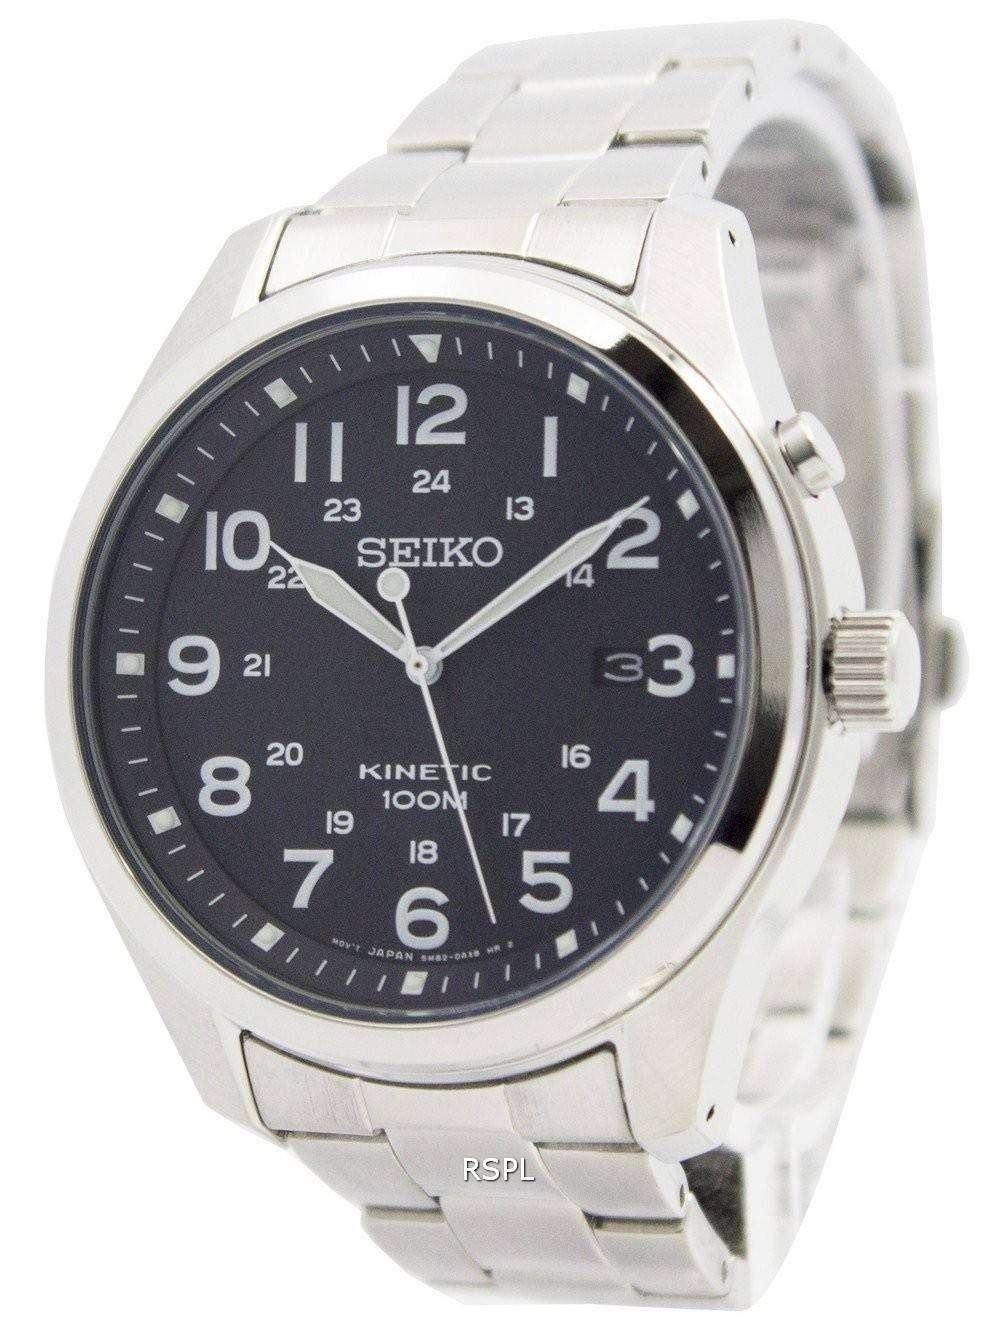 Seiko kinetic black dial 100m ska721p1 ska721p men 39 s watch downunderwatches for Seiko kinetic watches